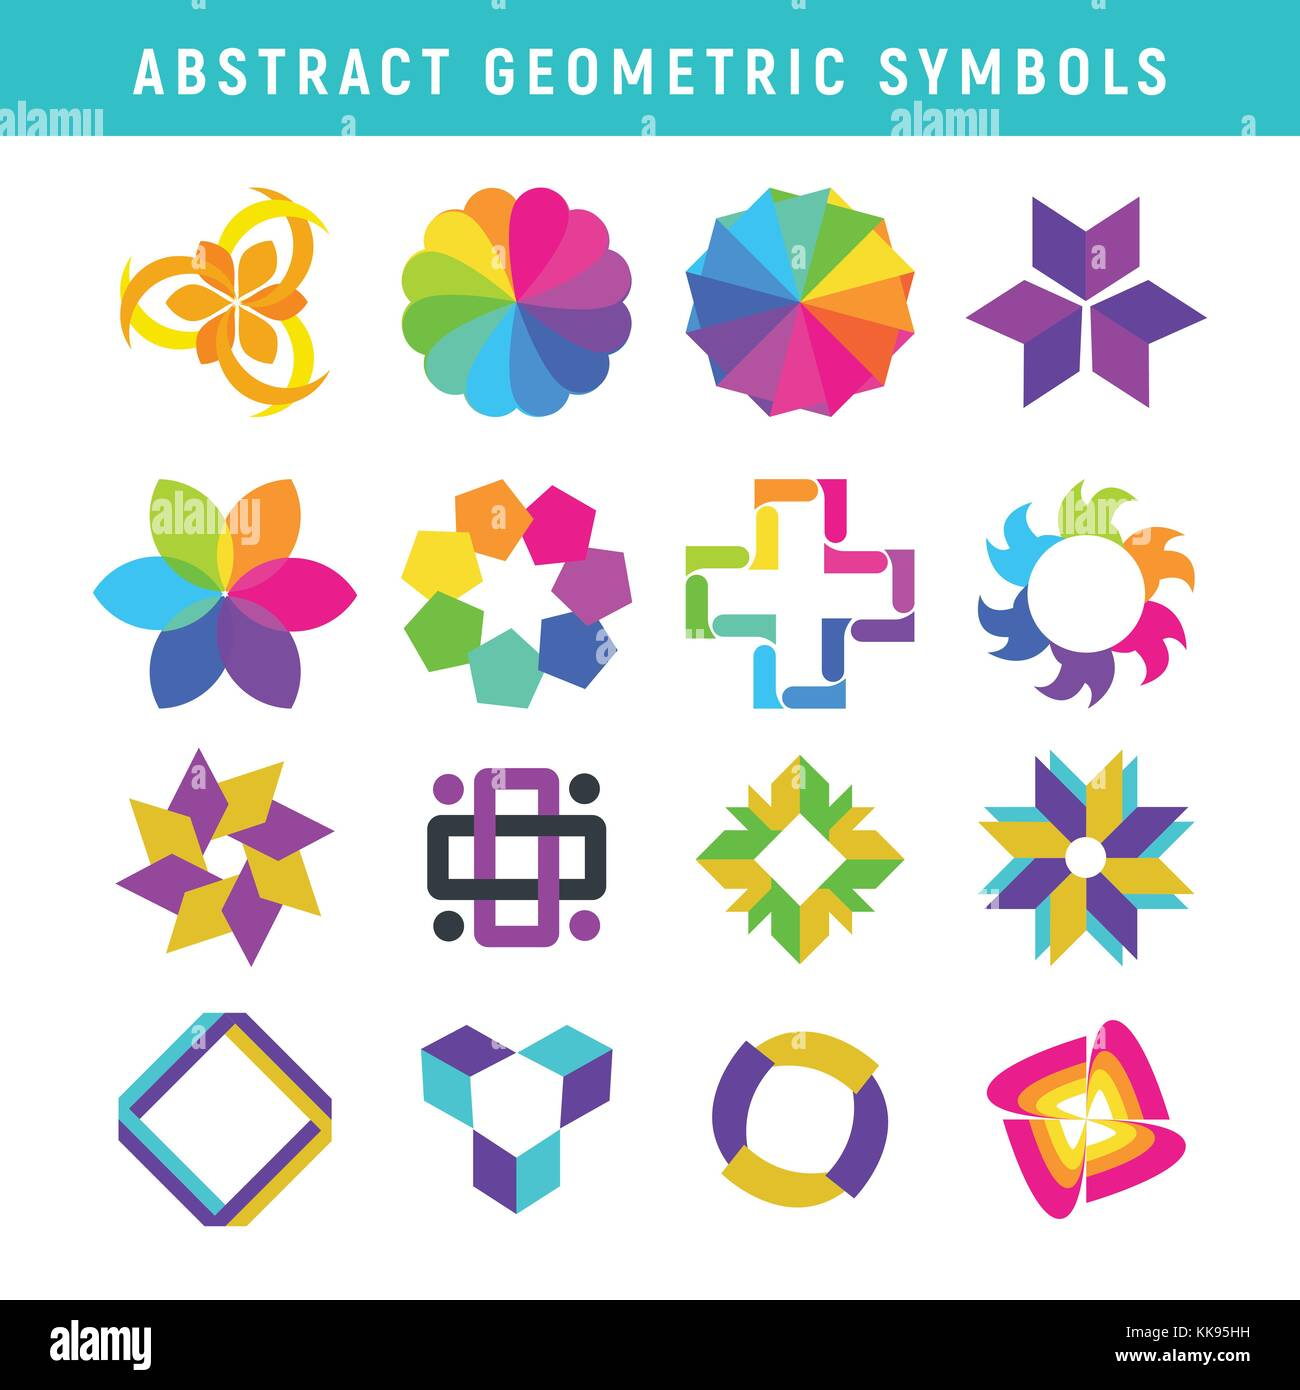 Abstract Geometric Symbols Vector Graphic Illustration Design - Stock Vector